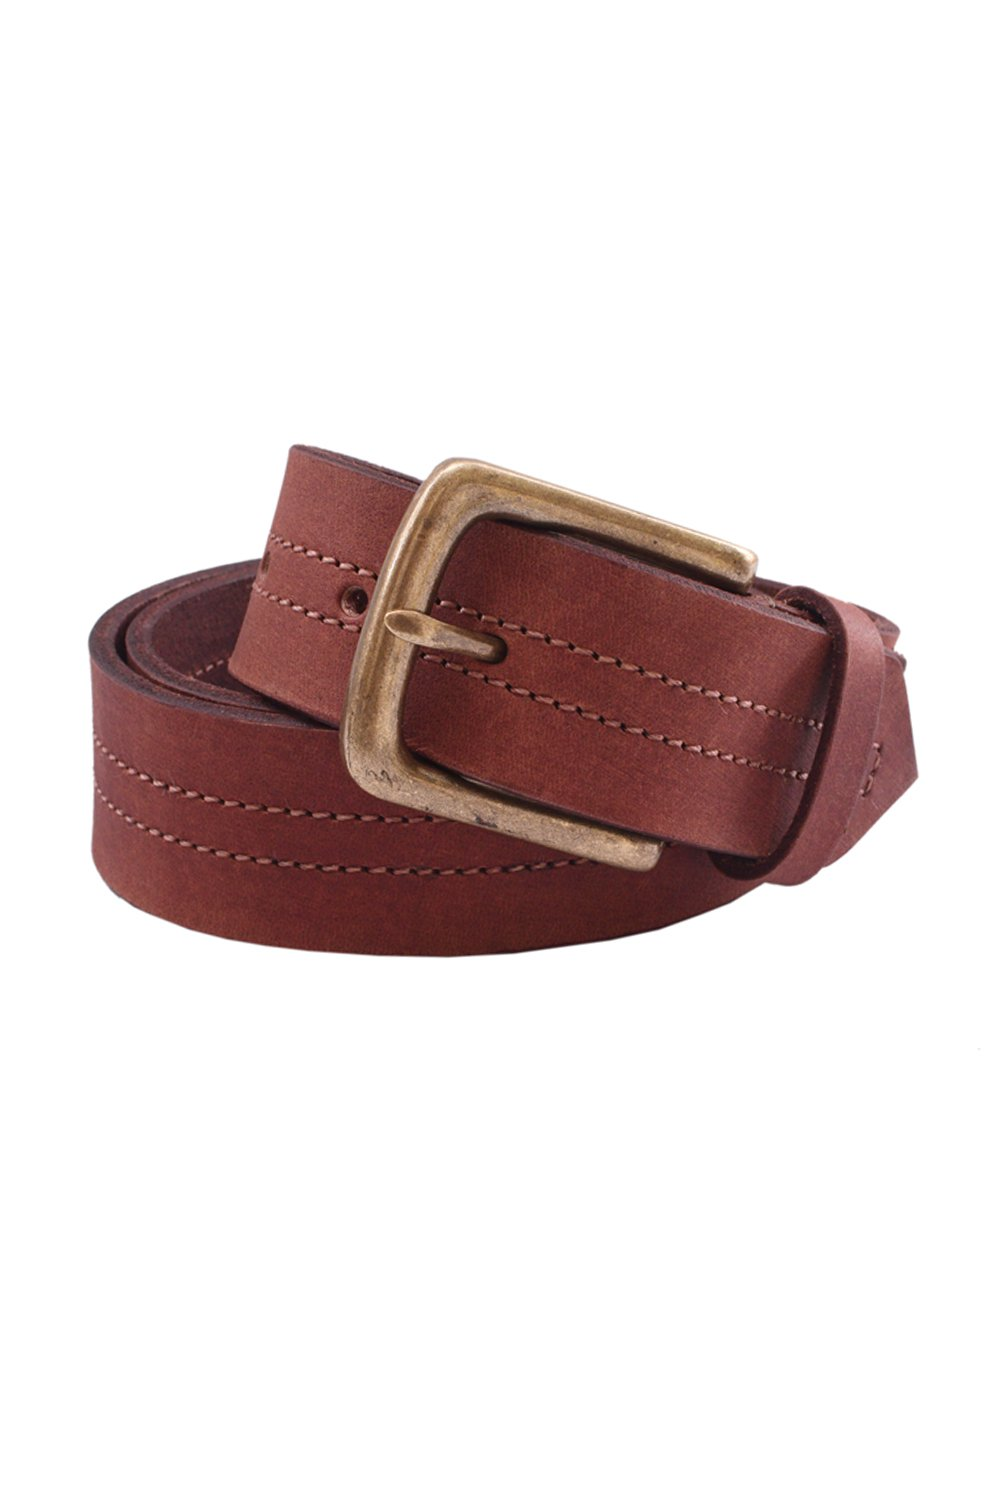 Pacific Gold Tan Genuine Leather 40mm Pin Buckle Casual Belt for Men-Sz: 44